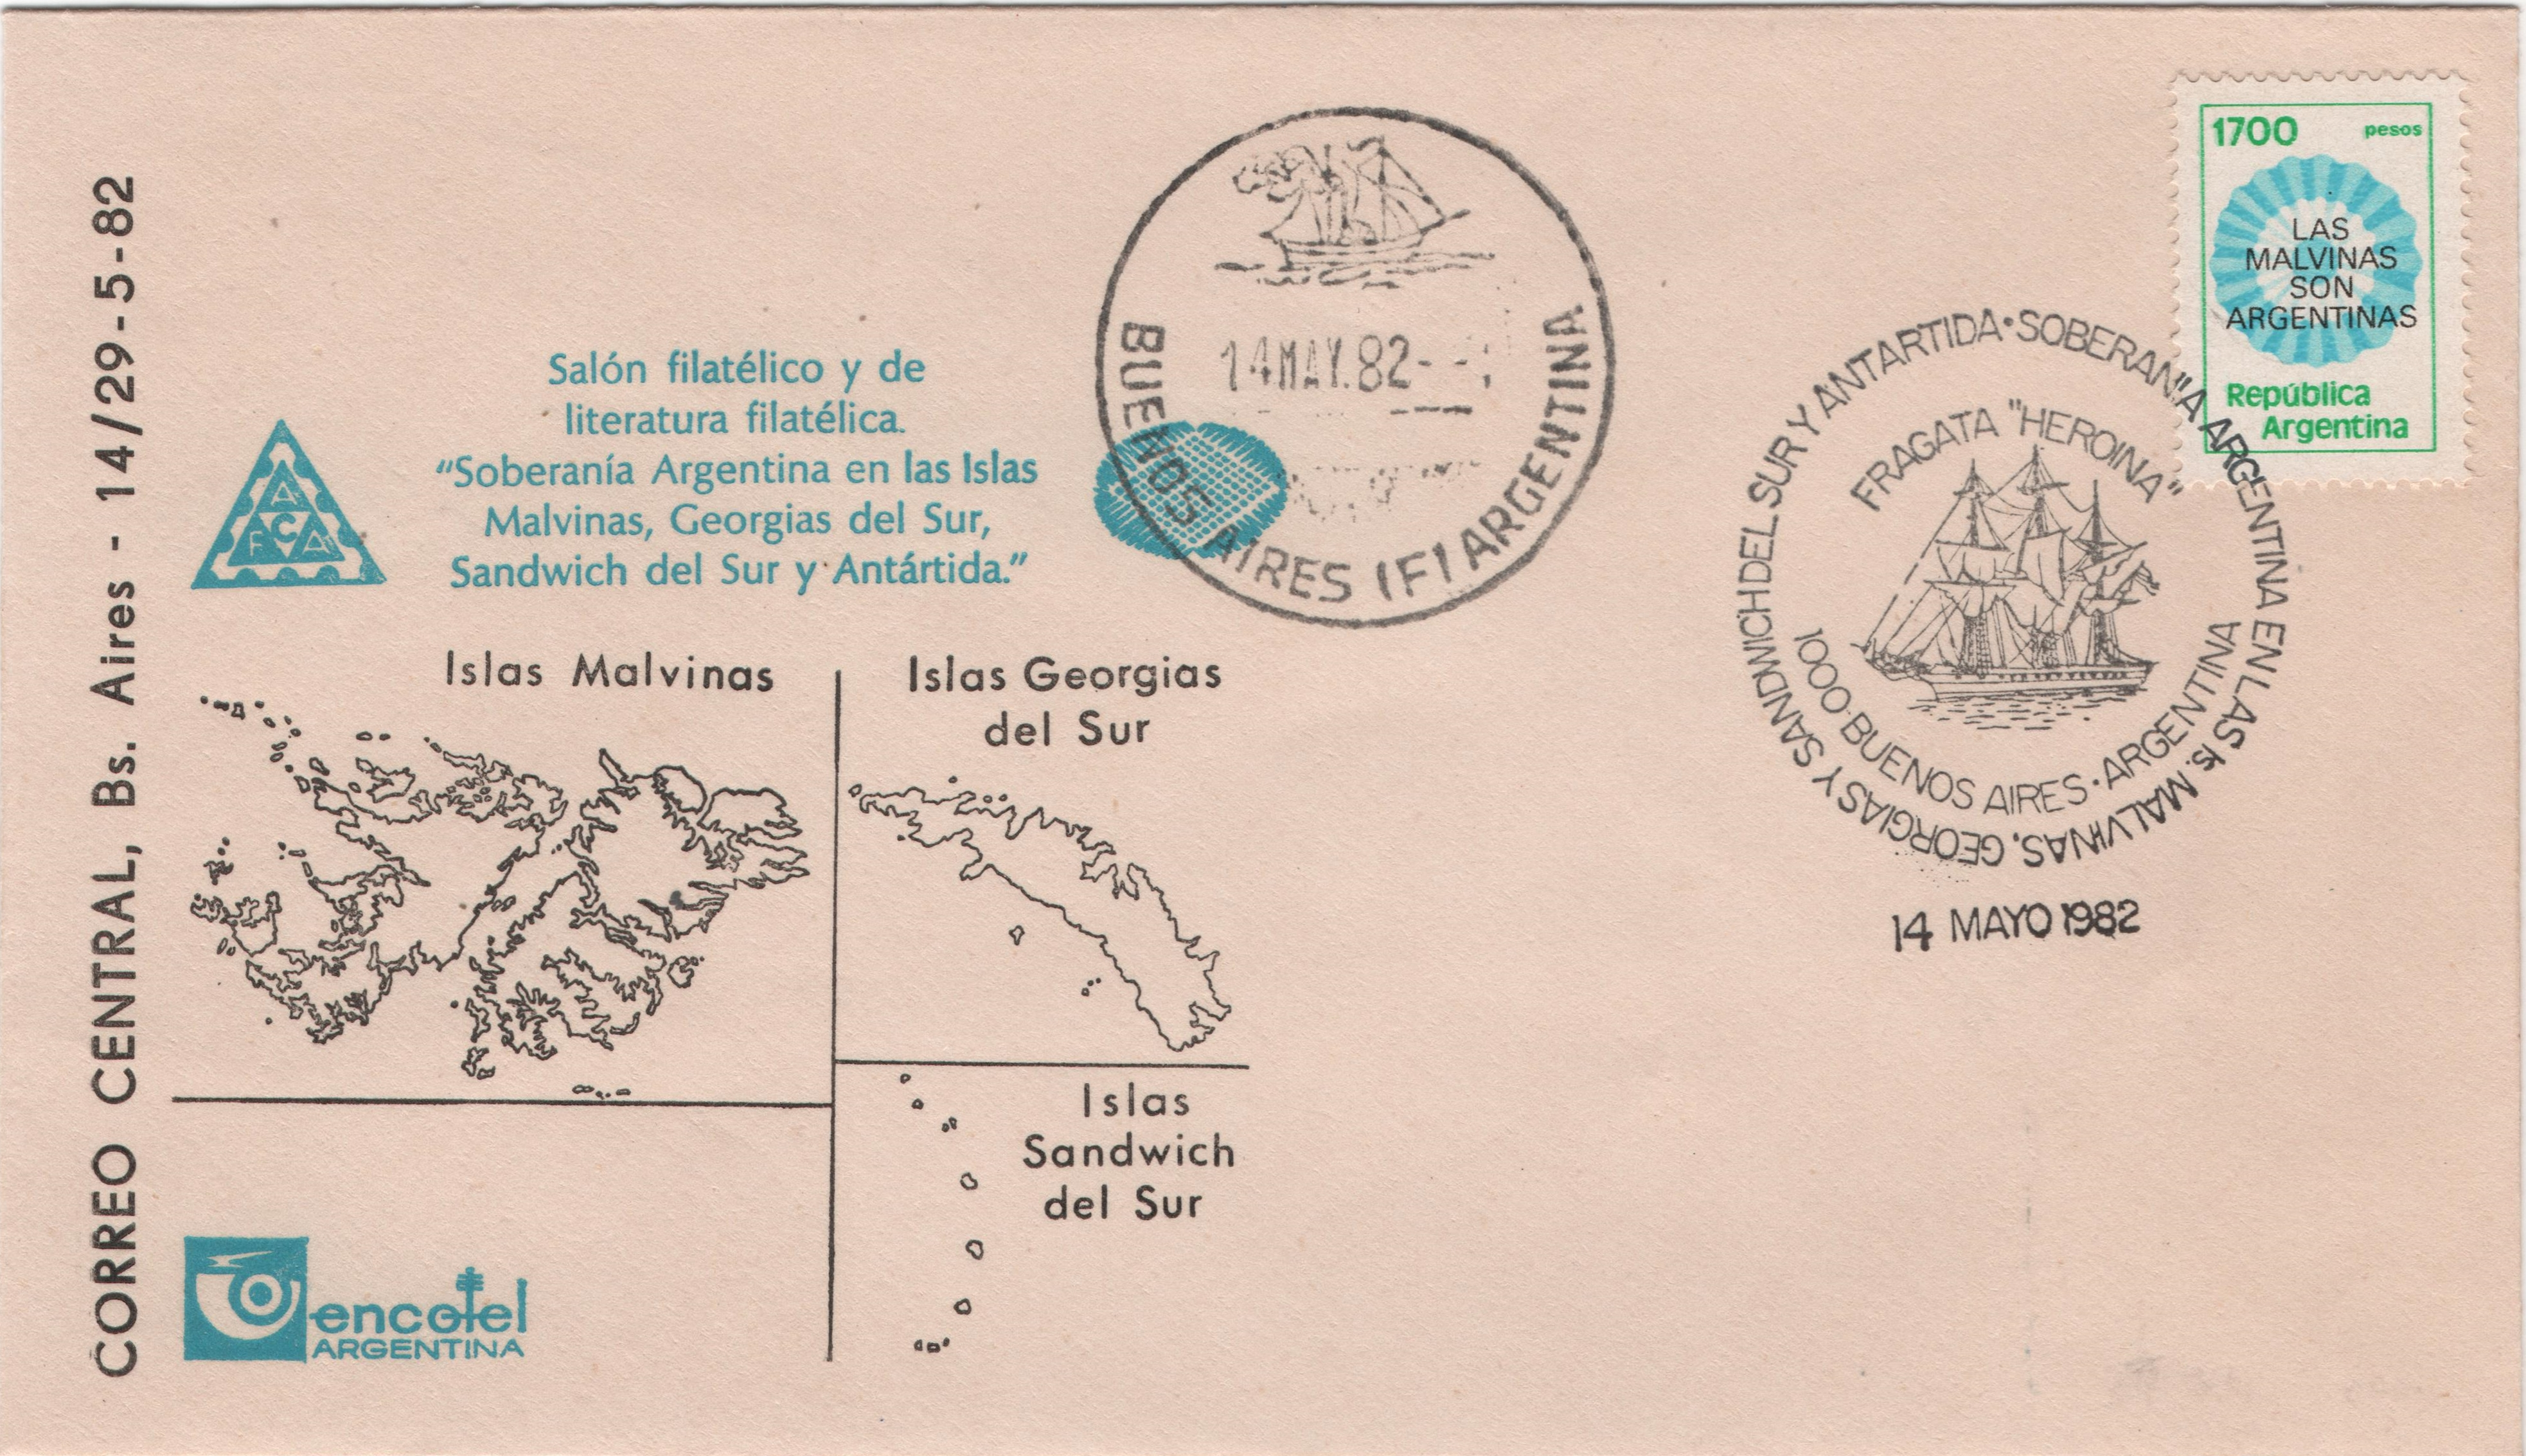 Argentina - Scott @1338 (1982) on unaddressed cover from an philatelic exhibition in Buenos Aires on May 14. The pictorial cancellation which ties the stamp to the cover pictures the frigate Herona and states the